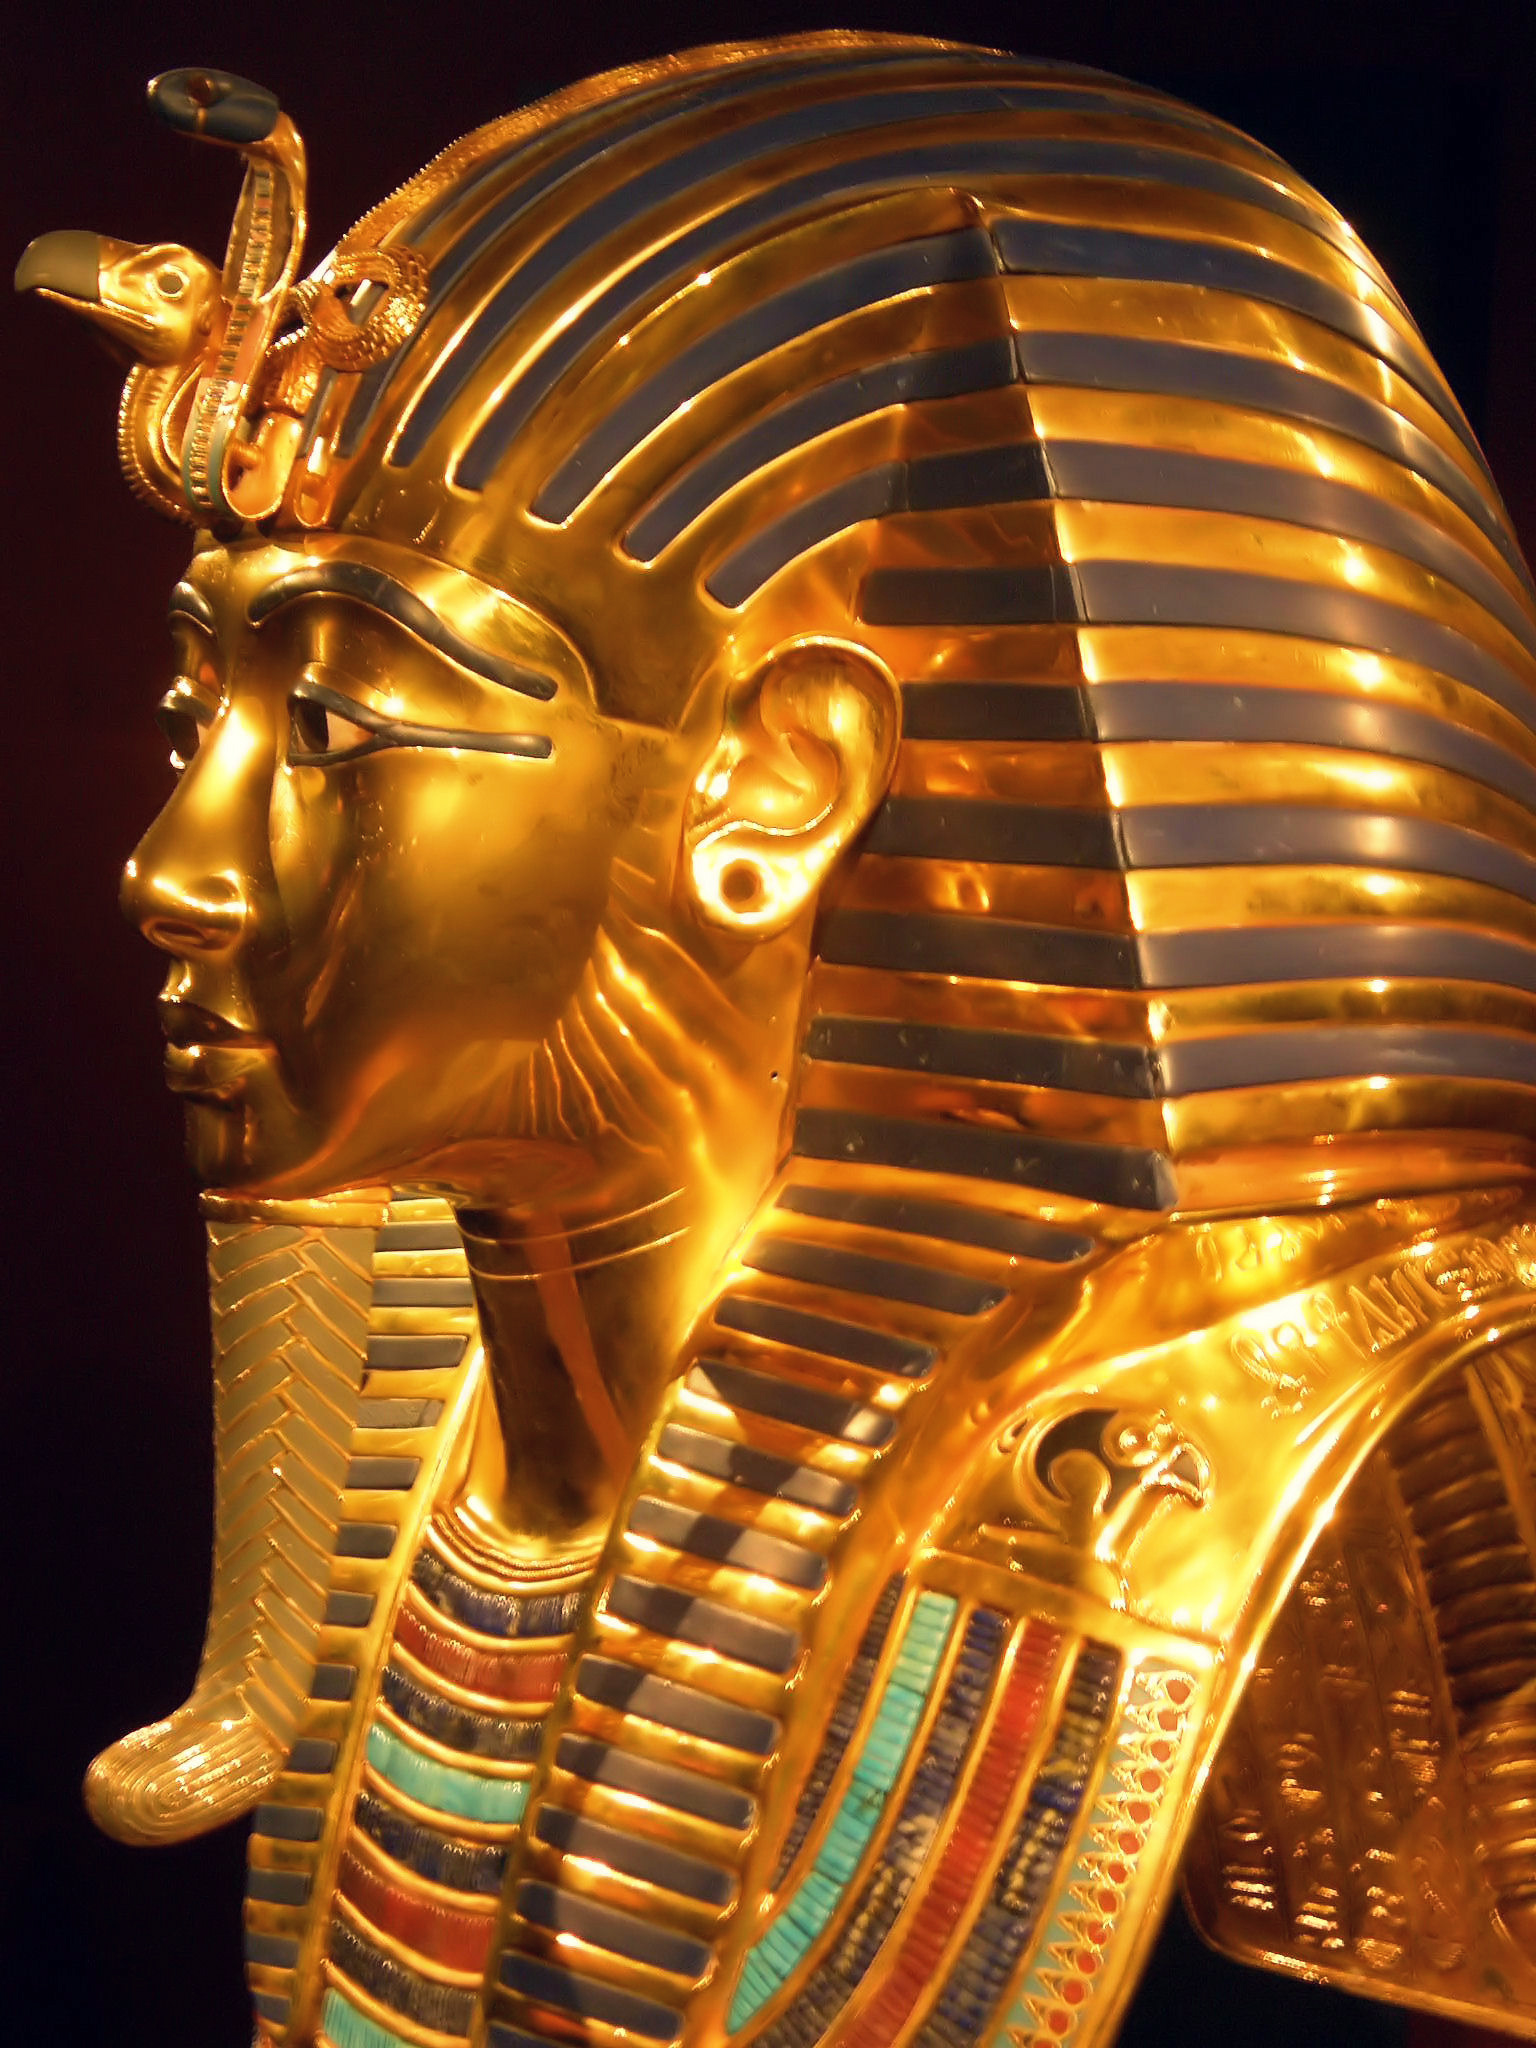 tutankhamen's death 2017-11-22  the archaeologist's death at  death shall come on swift wings to him who disturbs the peace of the king was allegedly engraved on the exterior of king tutankhamen.